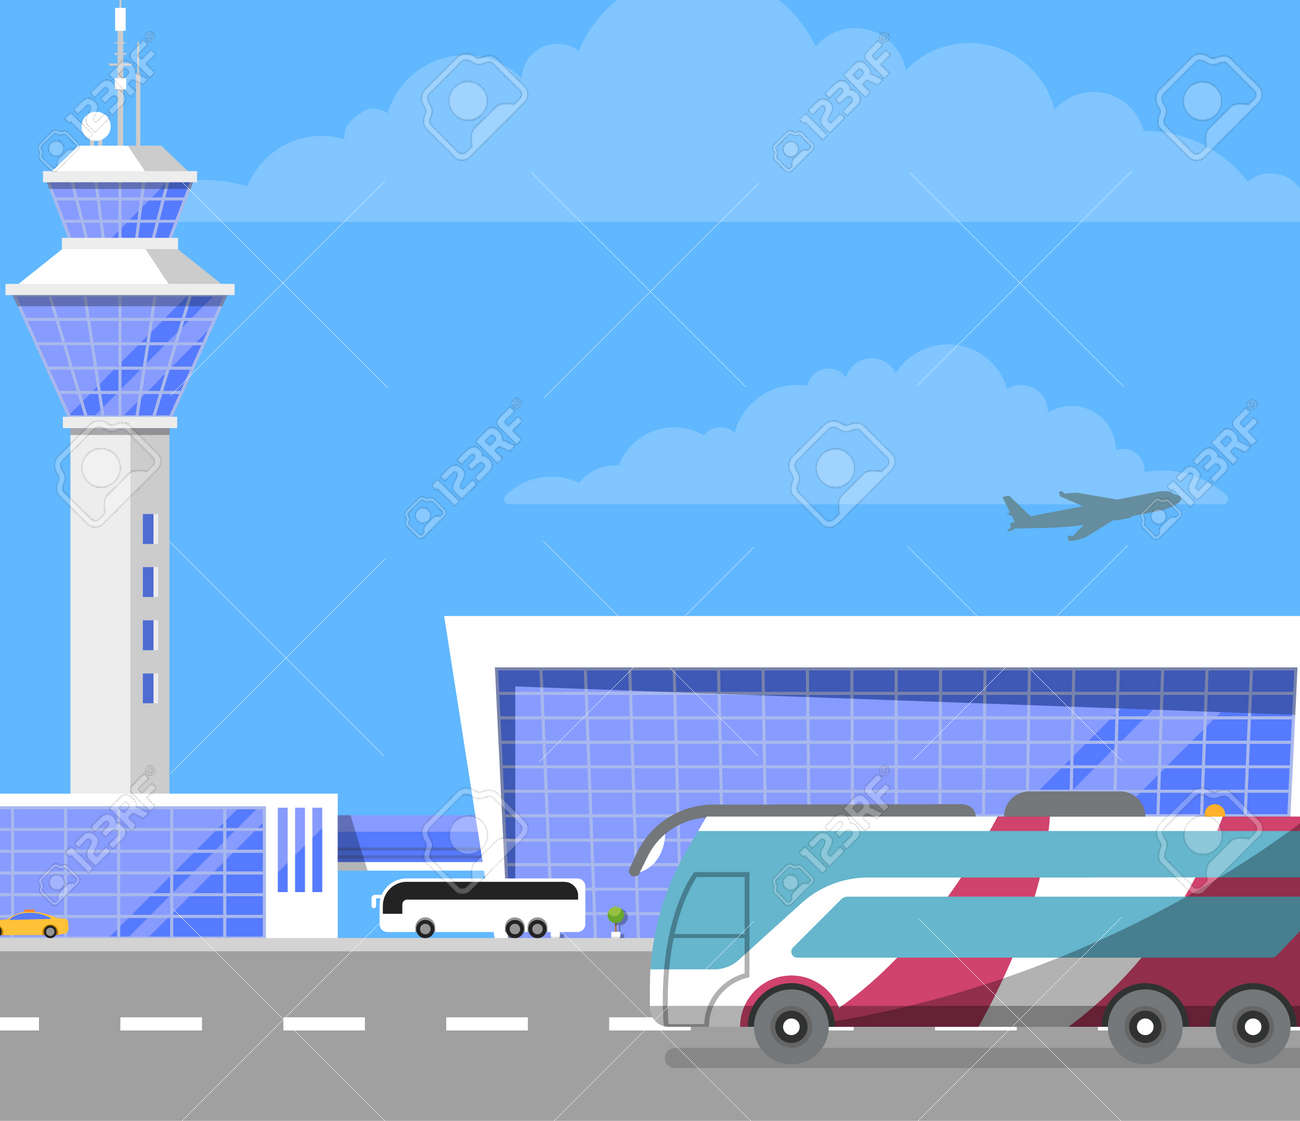 Modern international airport building with flight control tower. Passenger  bus on road near glassy air